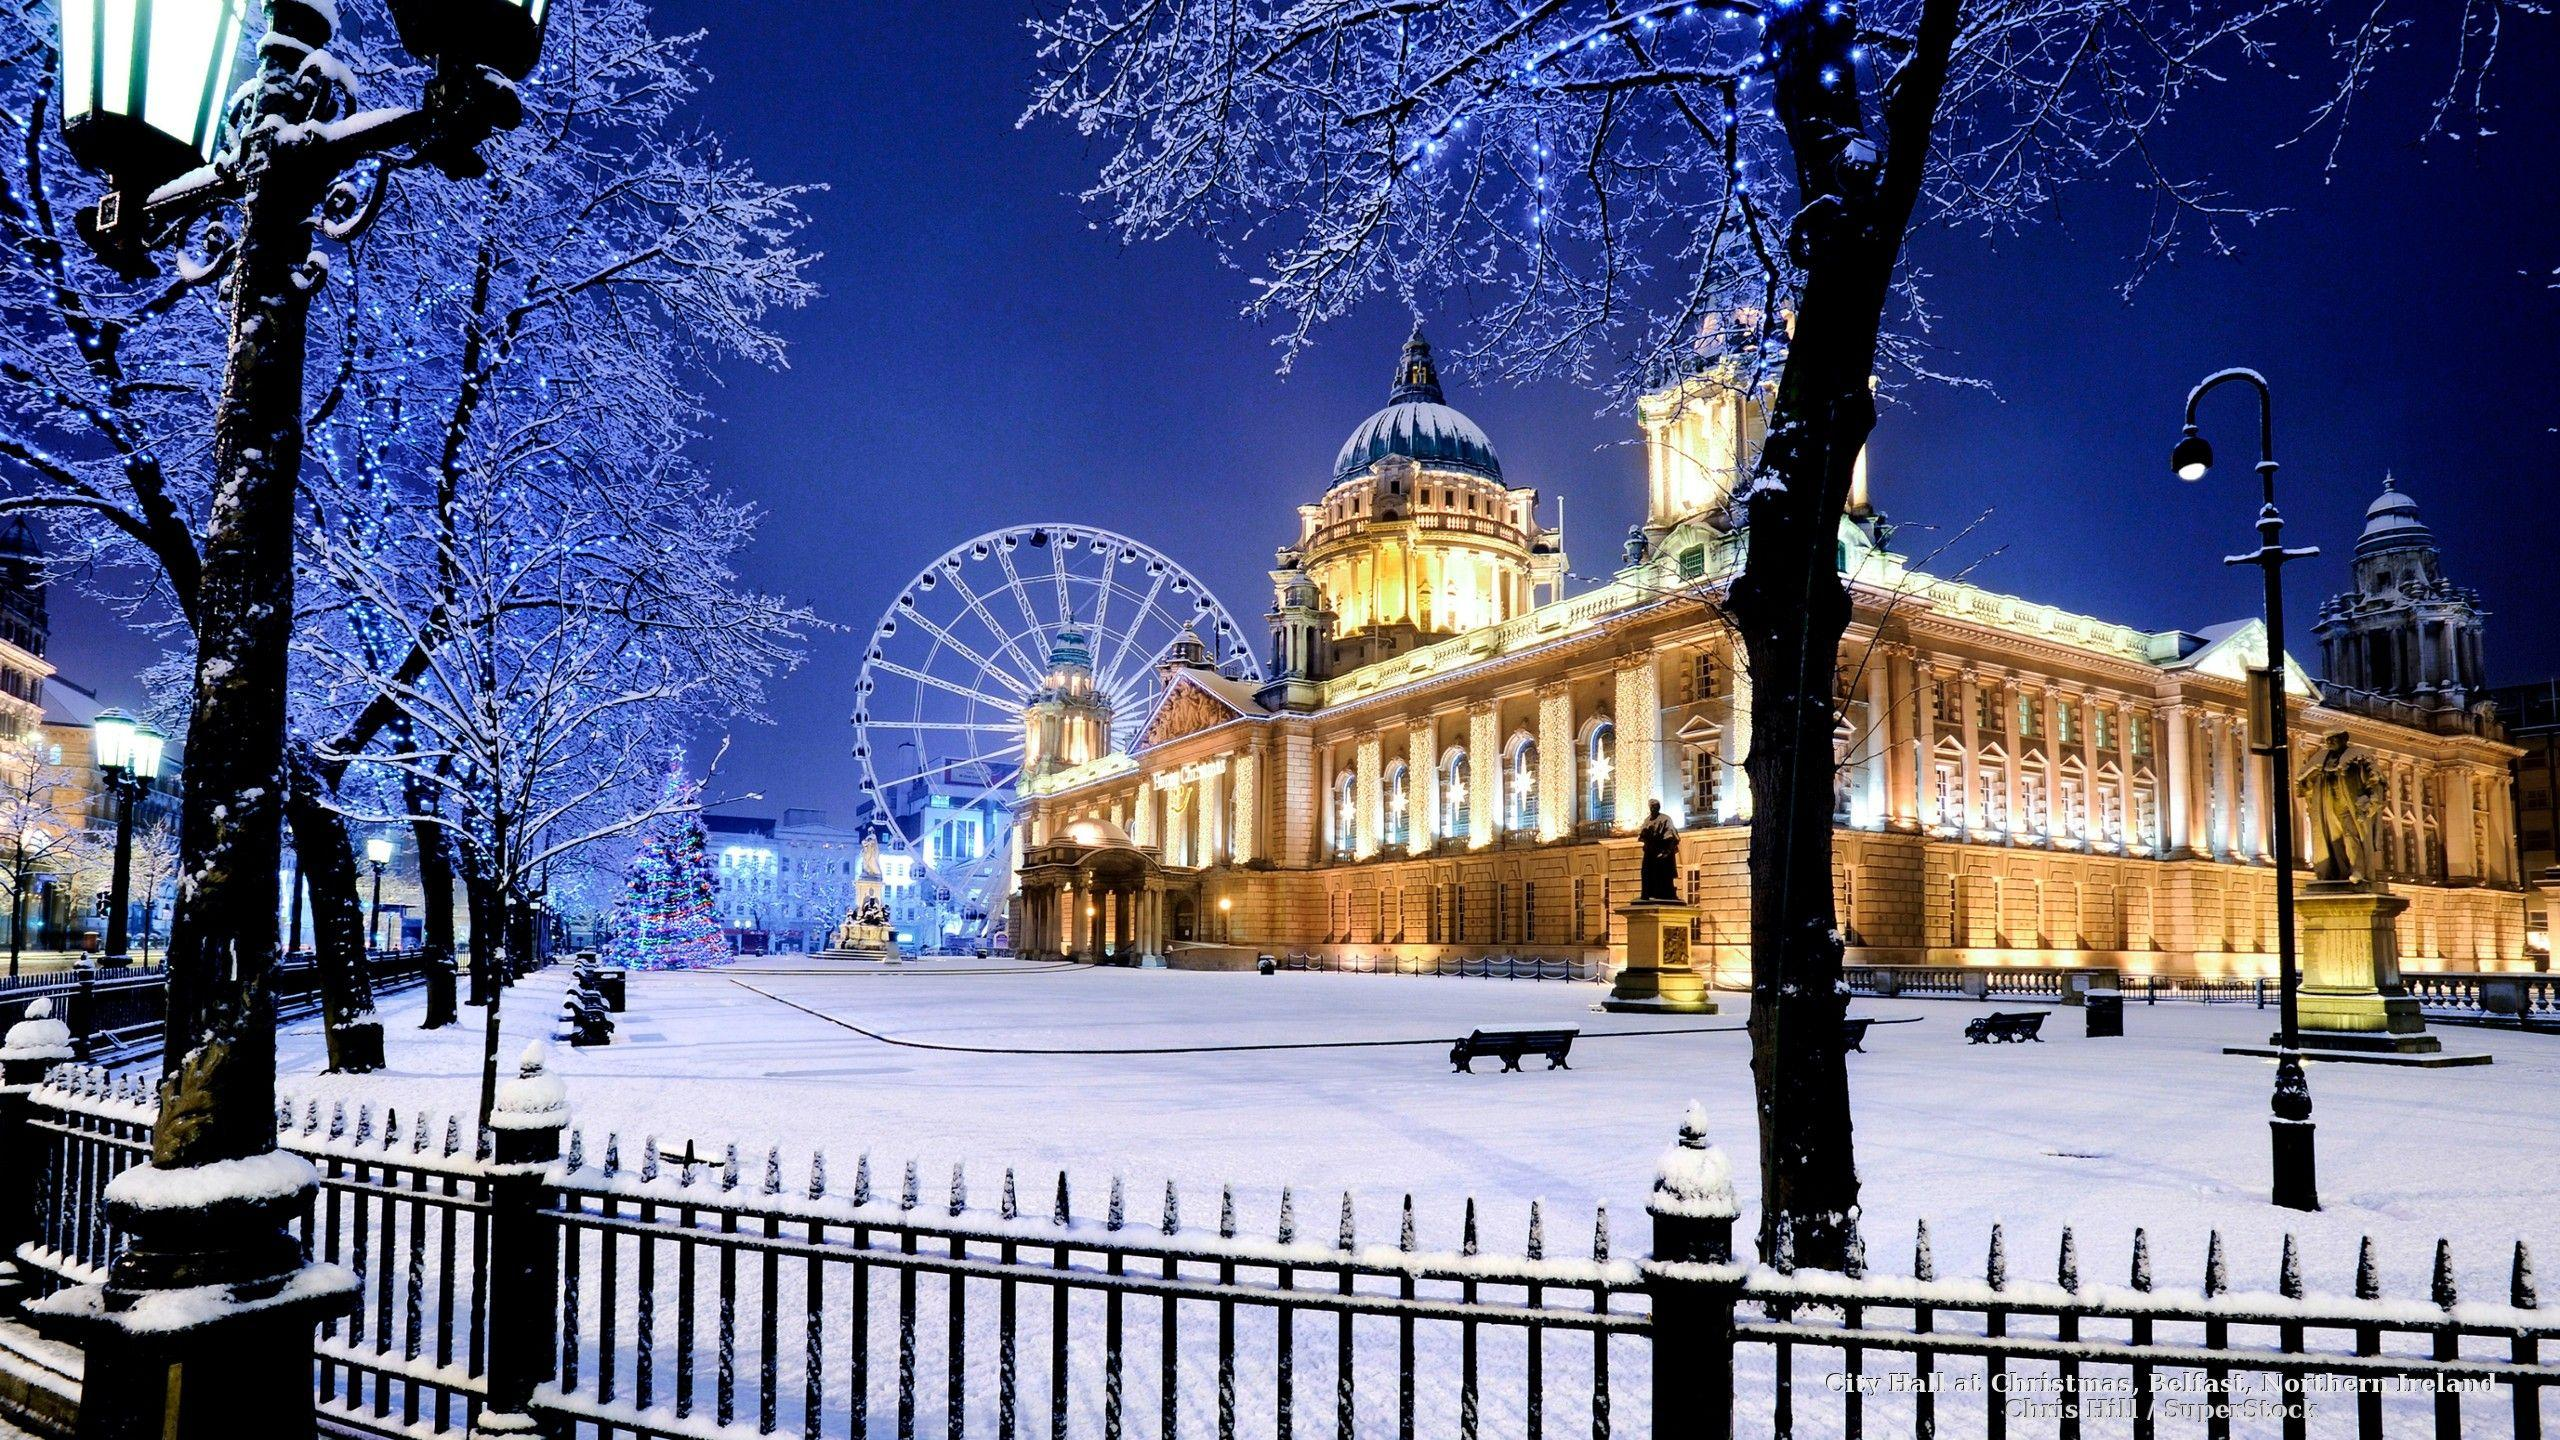 Winter: Christmas City Ireland Landscapes Decorations Belfast Snow